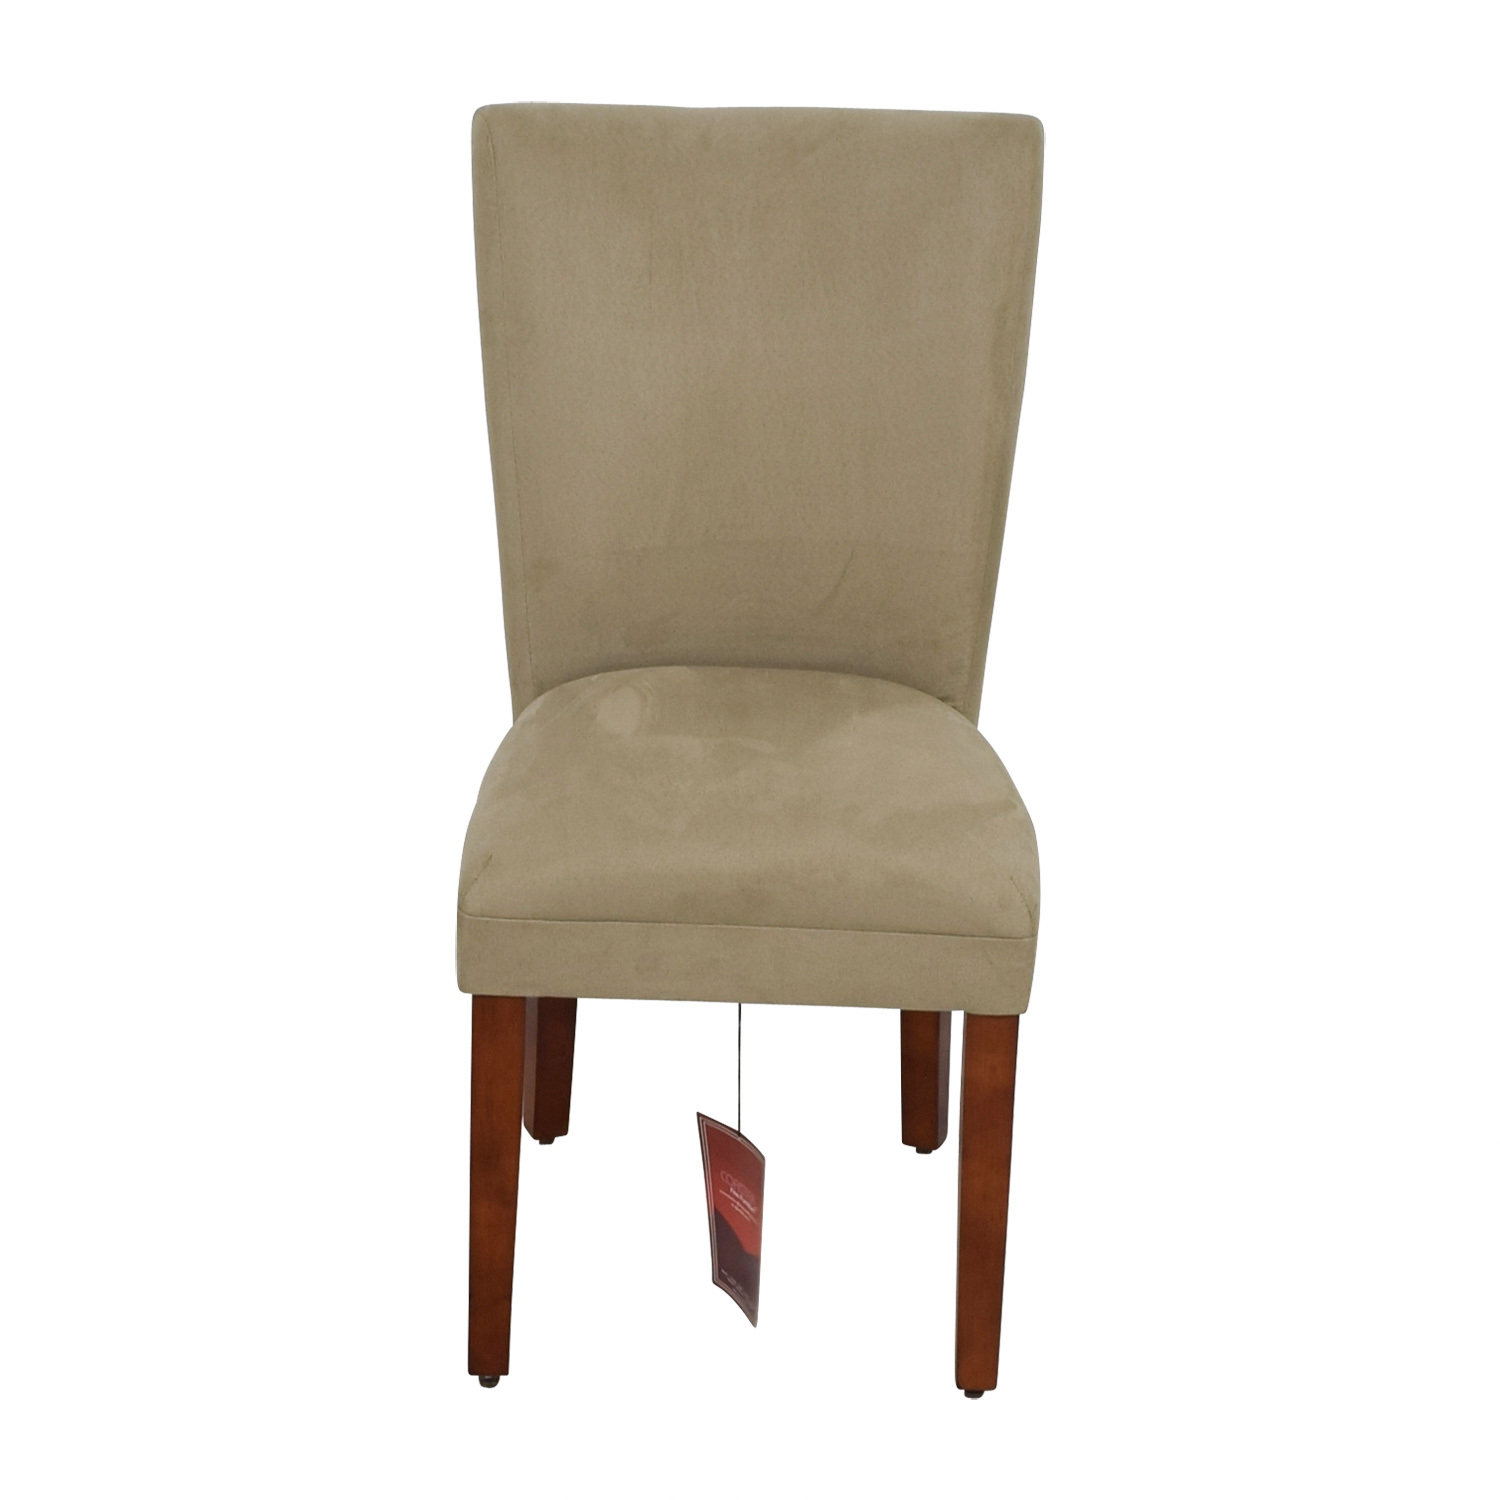 Coaster High Back Parsons Chair in Taupe Microfiber Fabric Coaster